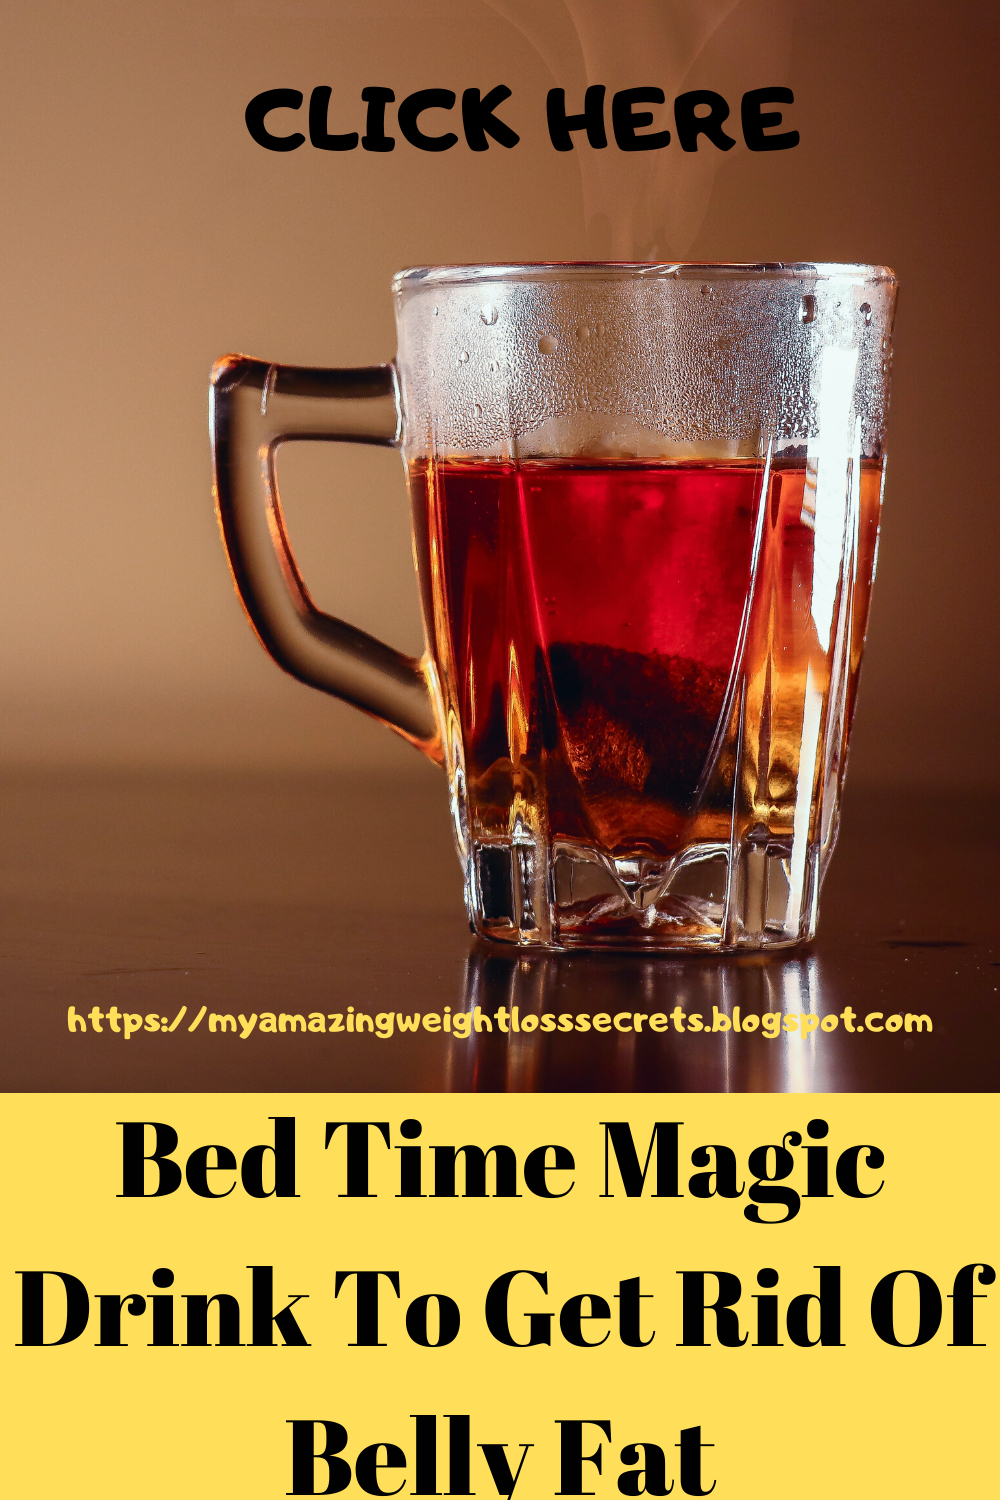 Bed Time Magic Drink To Get Rid Of Belly Fat & Get A Flat Tummy